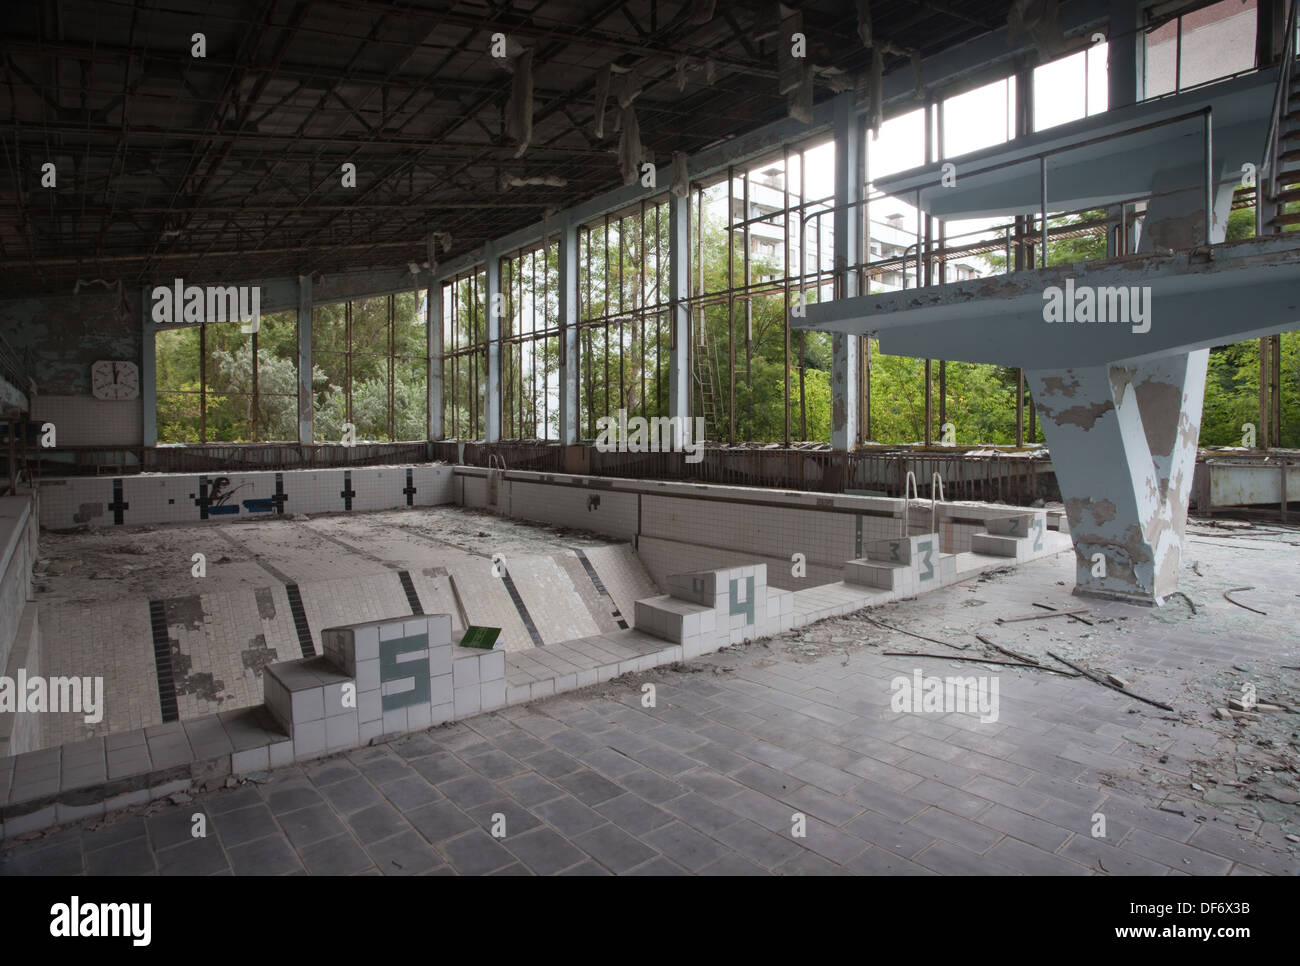 The Abandoned Swimming Pool In The Ghost Town Of Pripyat Ukraine Stock Photo Alamy